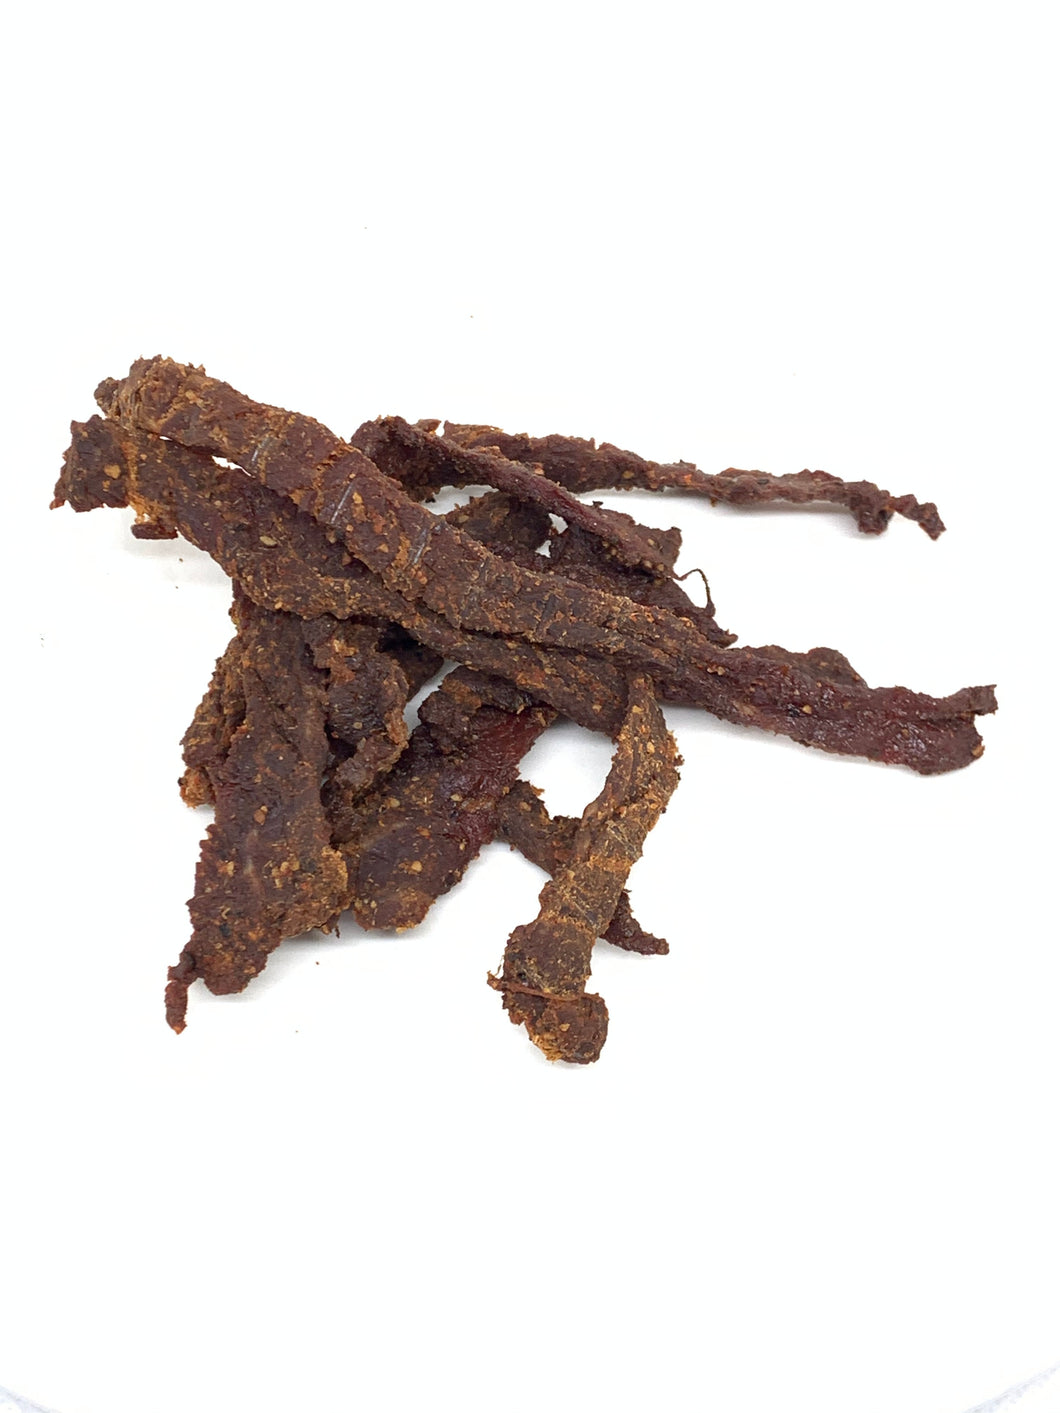 O's Blackened Steak Beef Jerky